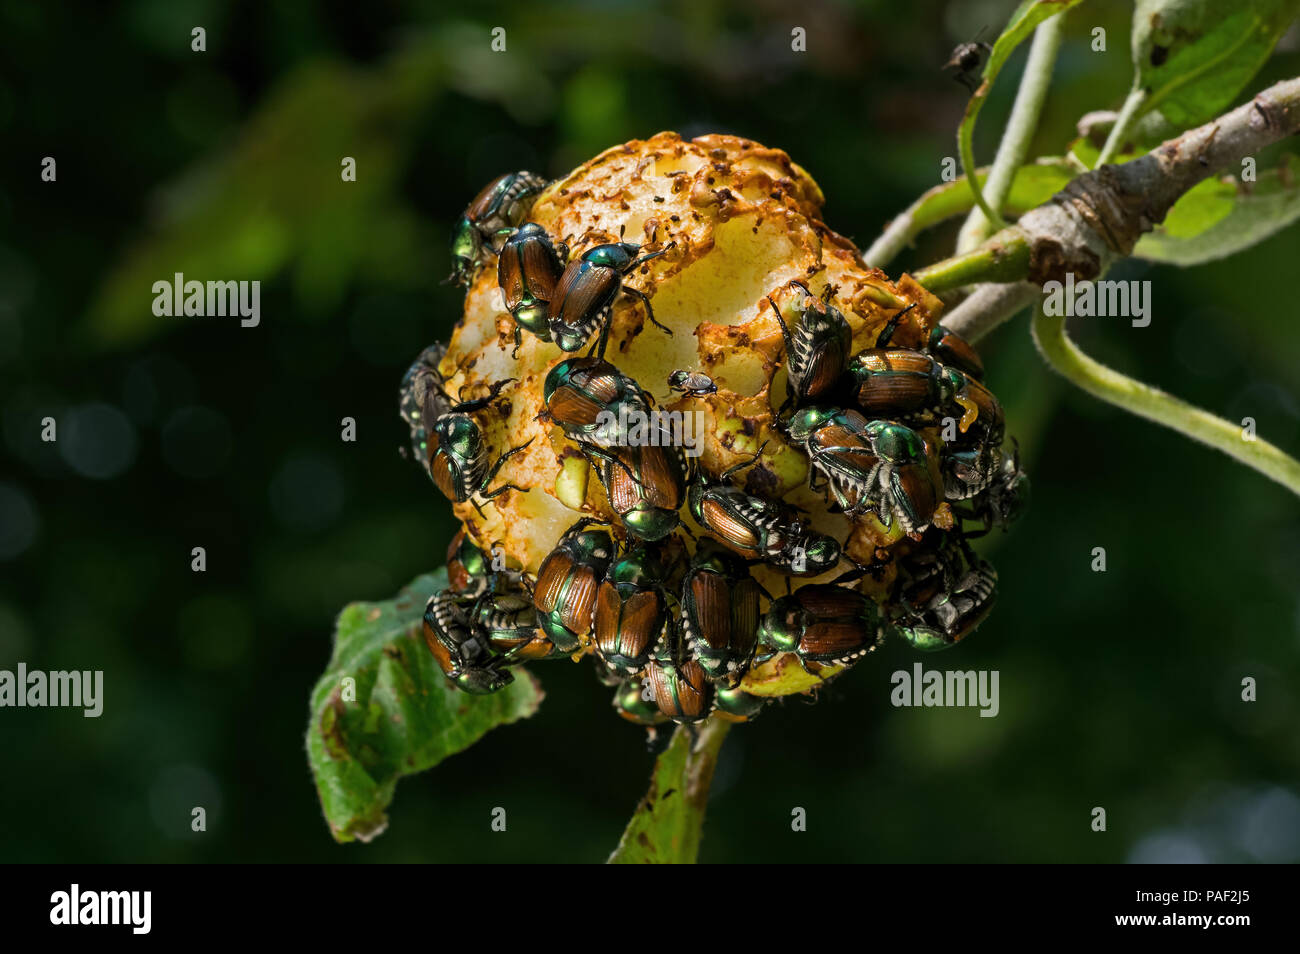 Japanese beetles (Popillia japonica) devouring a hanging apple. It is an incredibly destructive pest of ornamental plants and turf grasses. - Stock Image